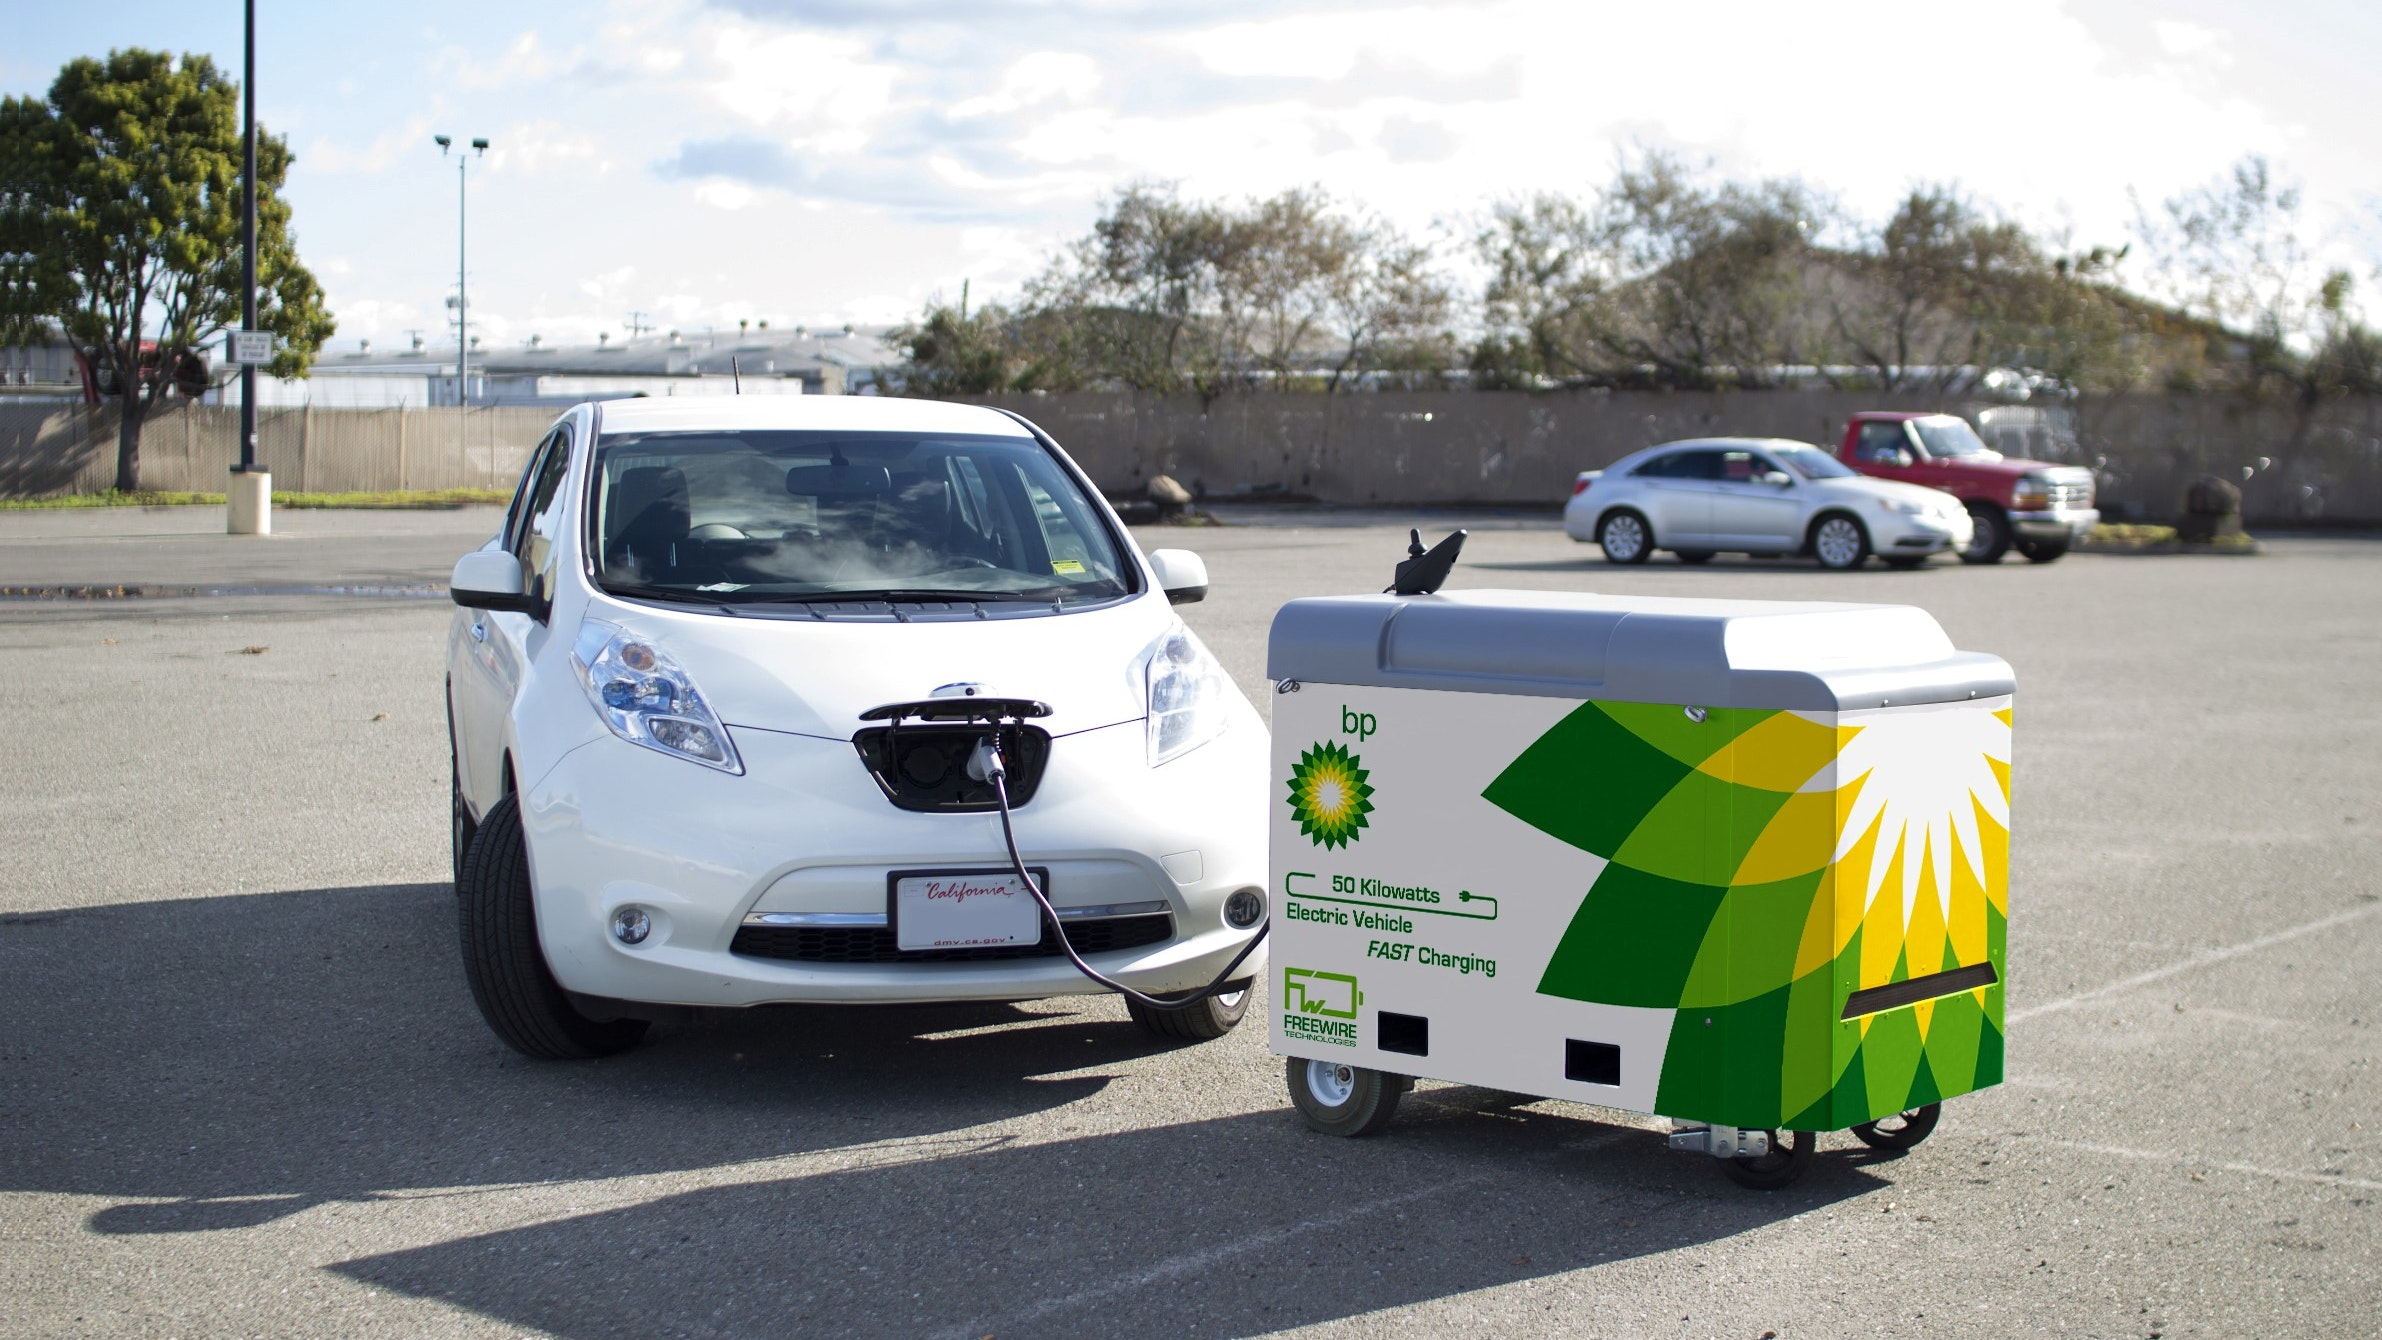 Bp To Trial Mobile Electric Car Charging At Forecourts